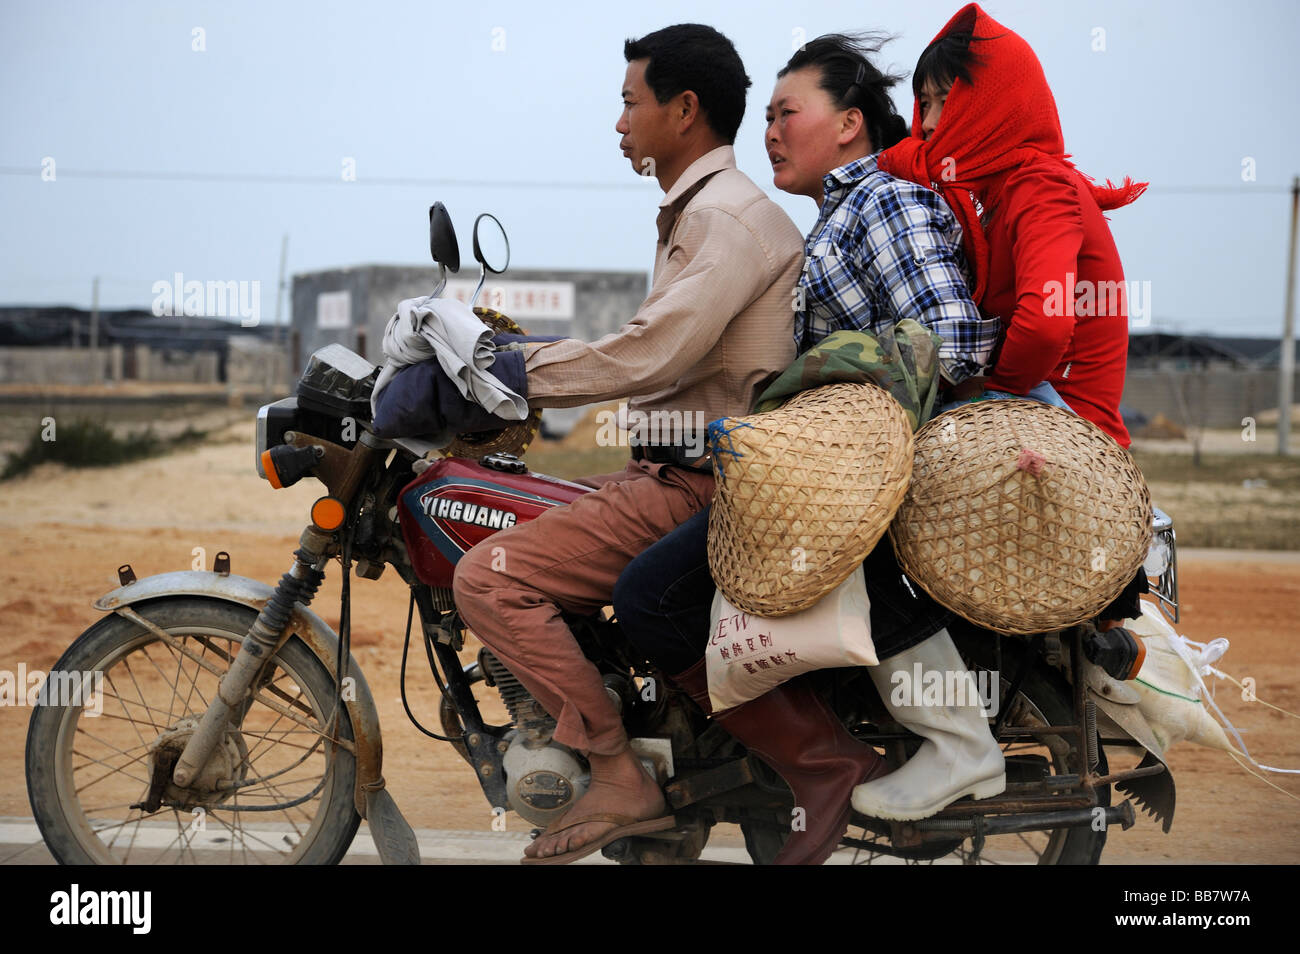 Three on a motorcycle in Zhangzhou, Fujian, China. 2009 - Stock Image